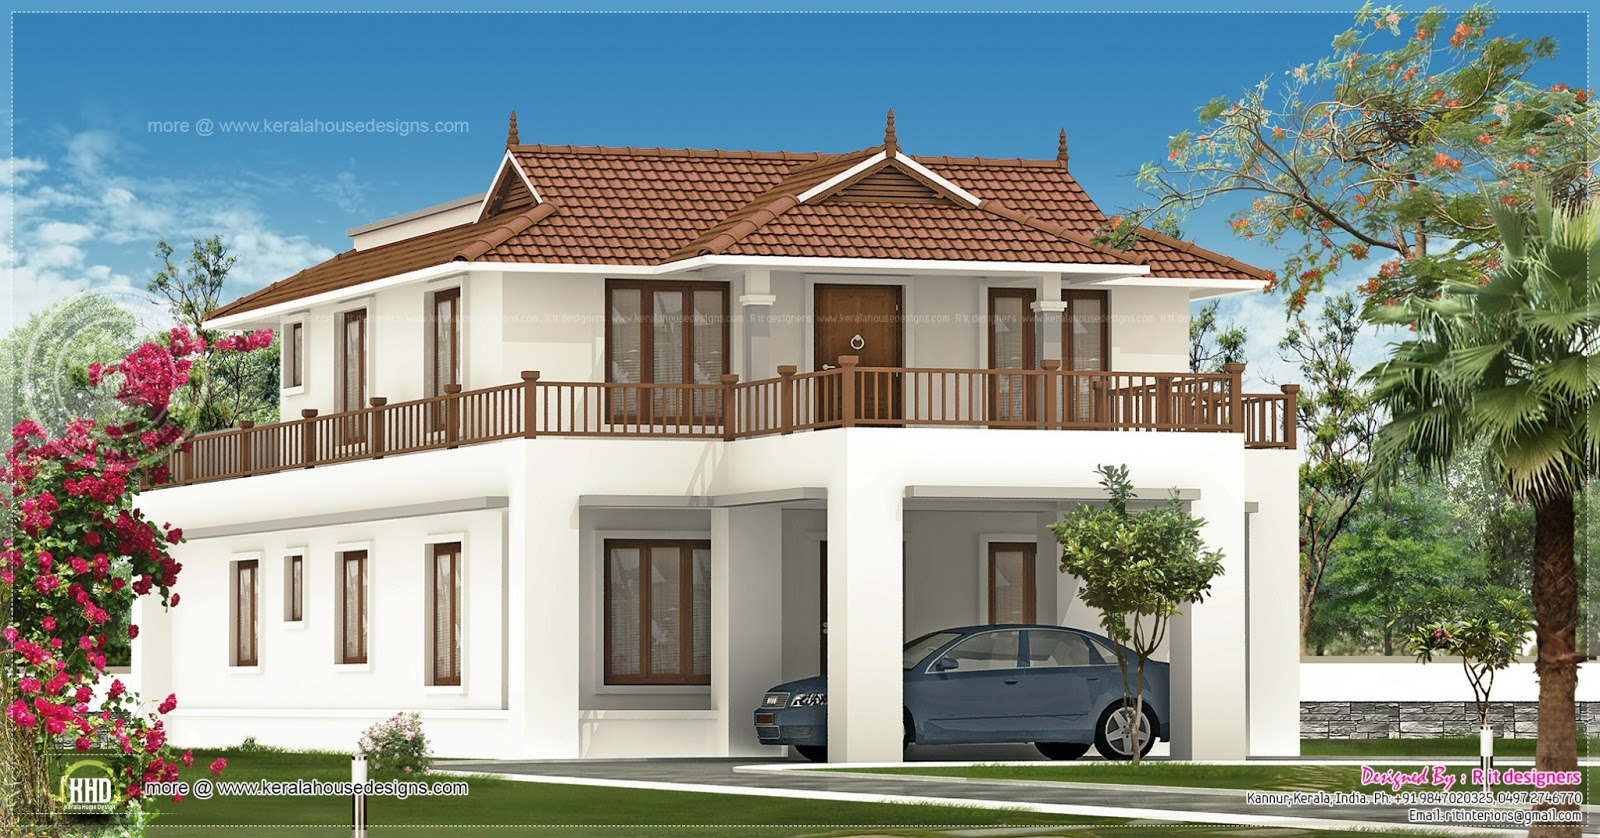 2820 square feet house exterior design home kerala plans for House exterior design pictures